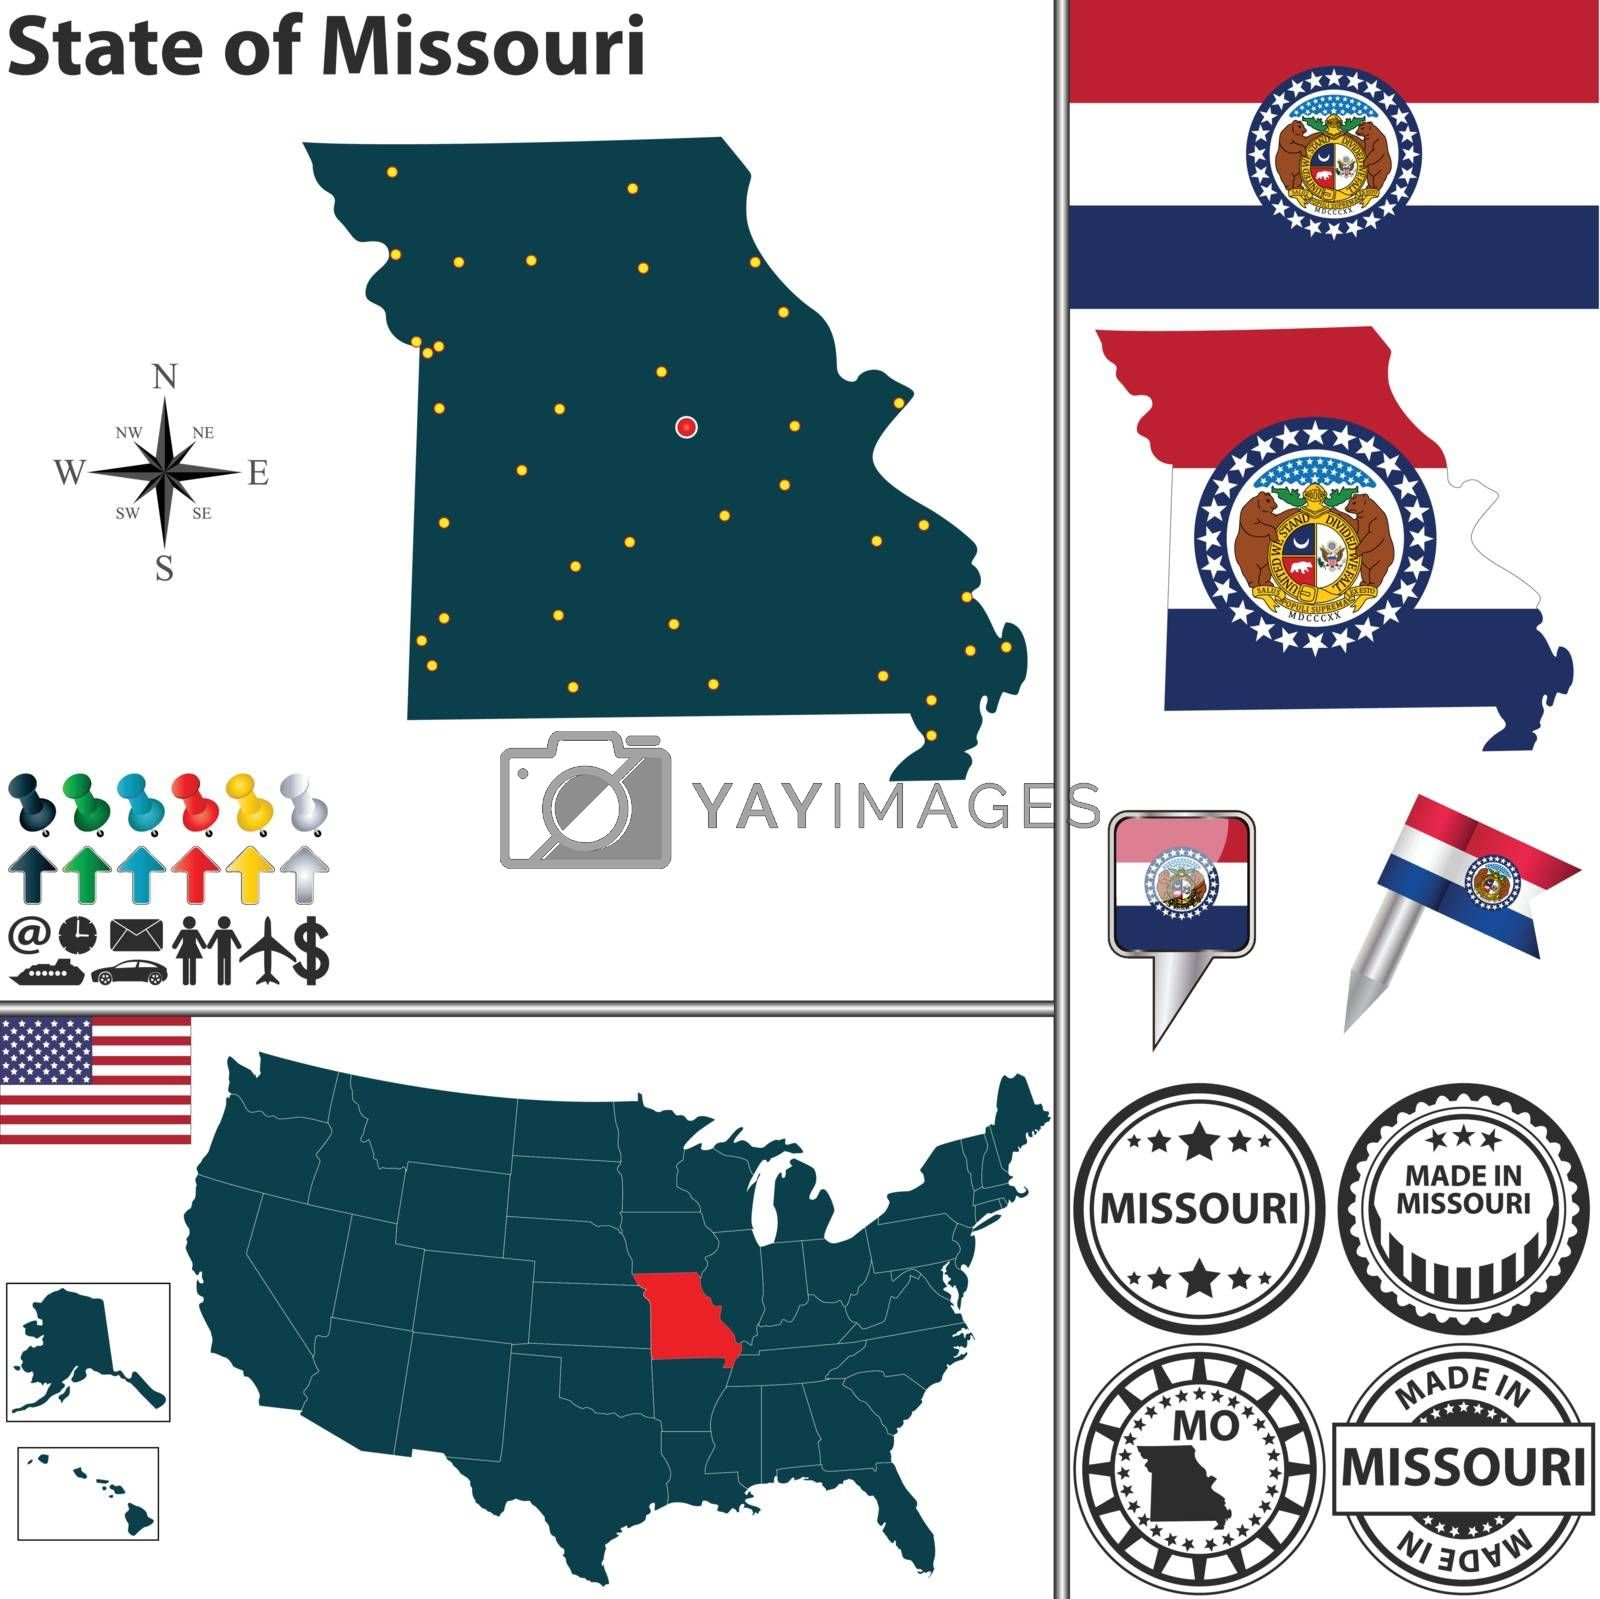 Royalty free image of Map of state Missouri, USA by sateda